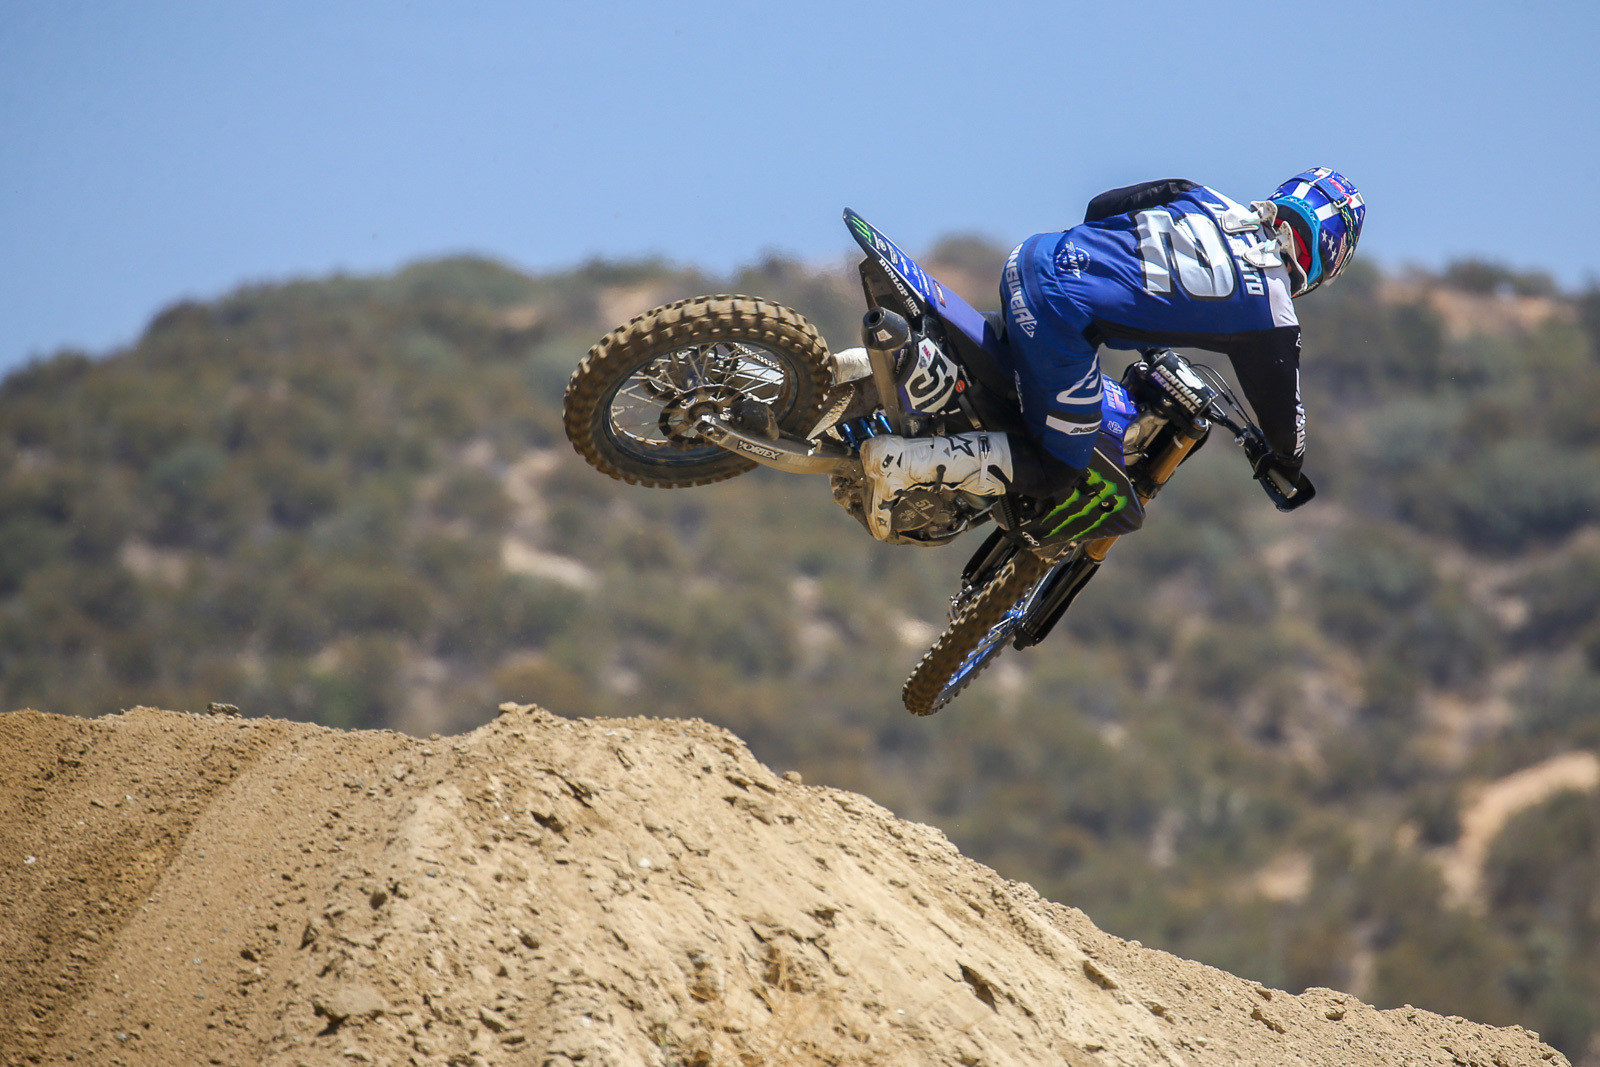 Ryan Villopoto was on hand, riding both Justin and Aaron's bikes, plus a third bike